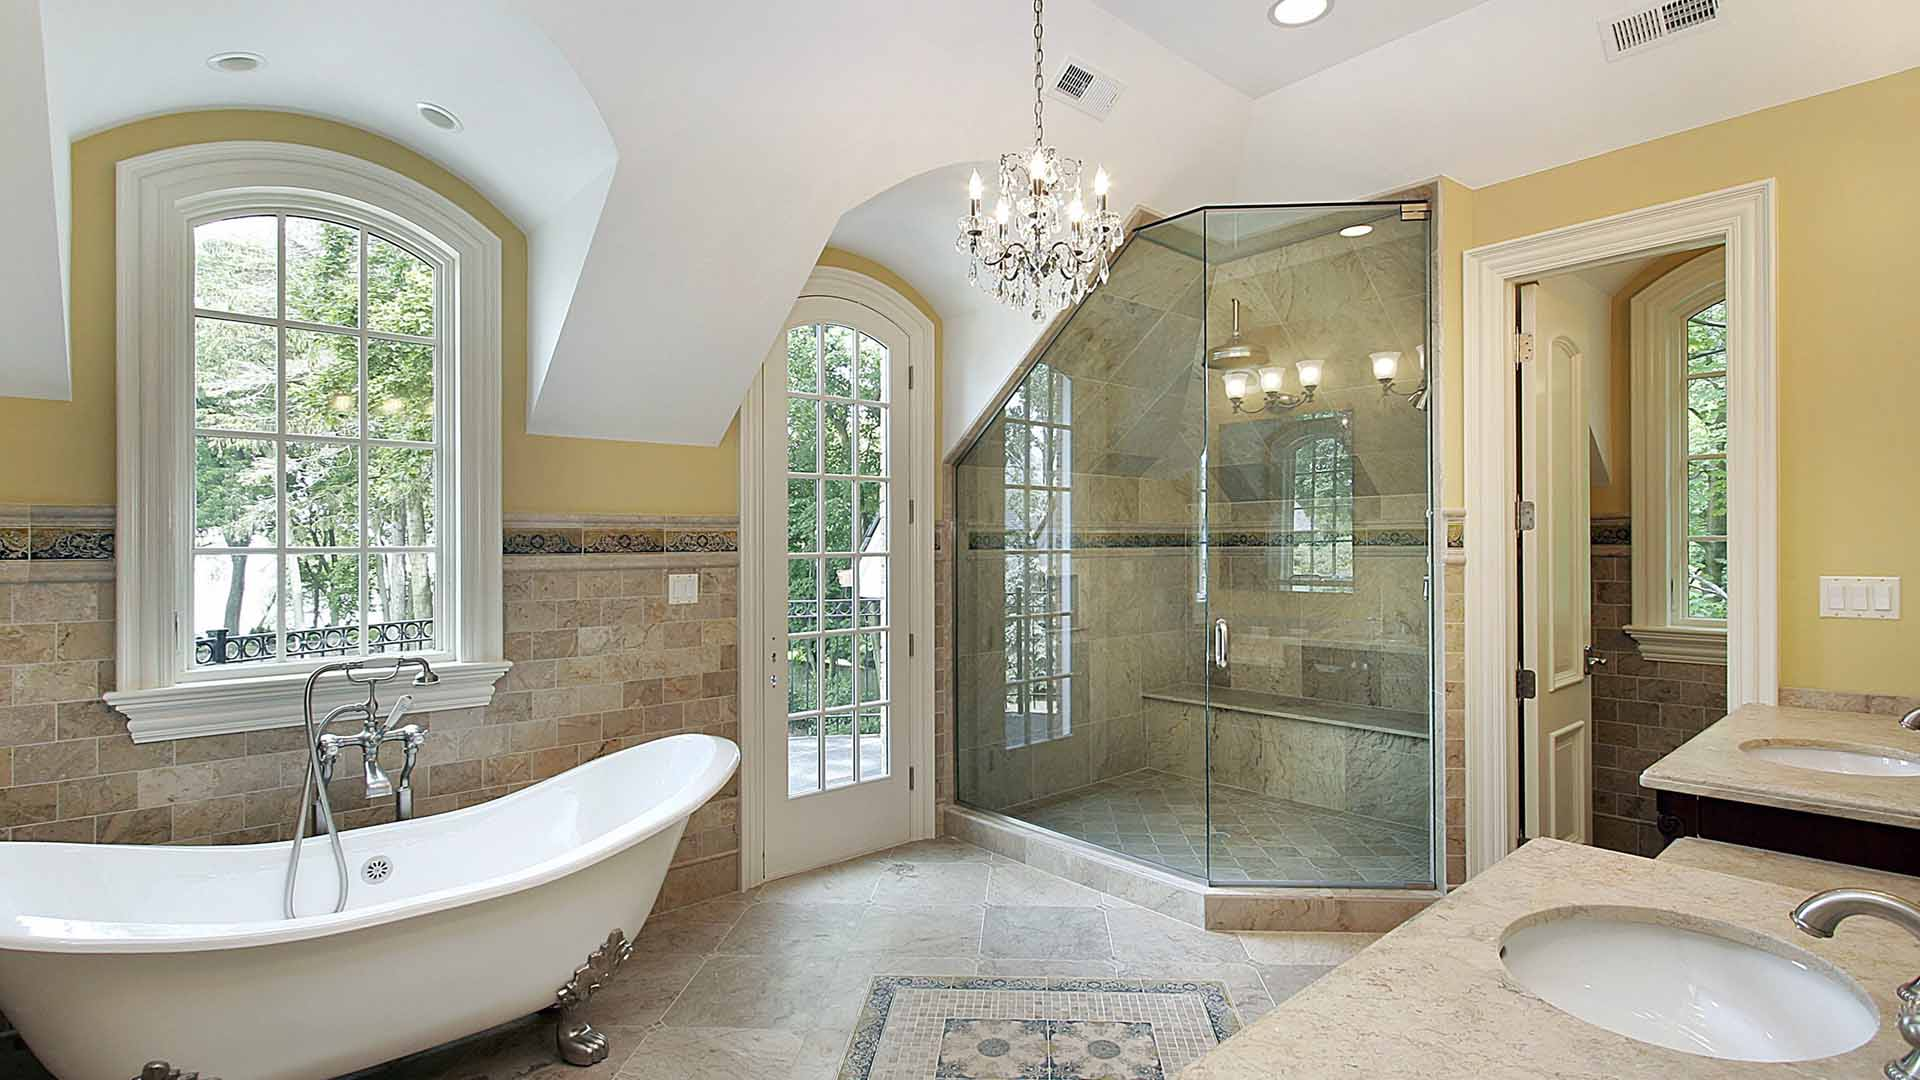 Get The Bathroom Of Your Dreams Planning A Renovation